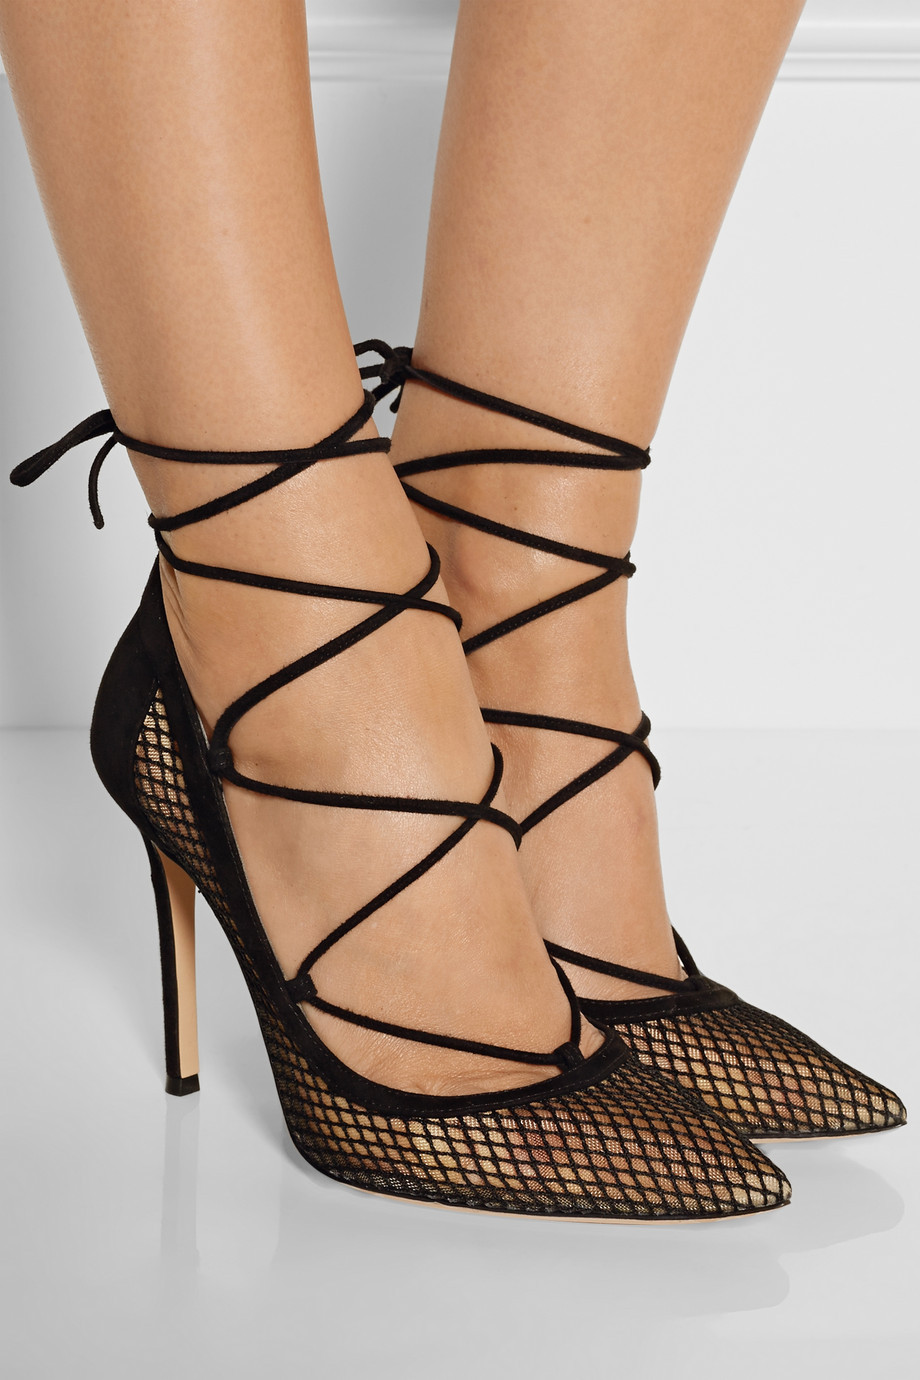 Newest Black Grid High Heels Woman Sexy Lace-up stiletto heels pointed toe thin heels pumps cut-outs dress heels